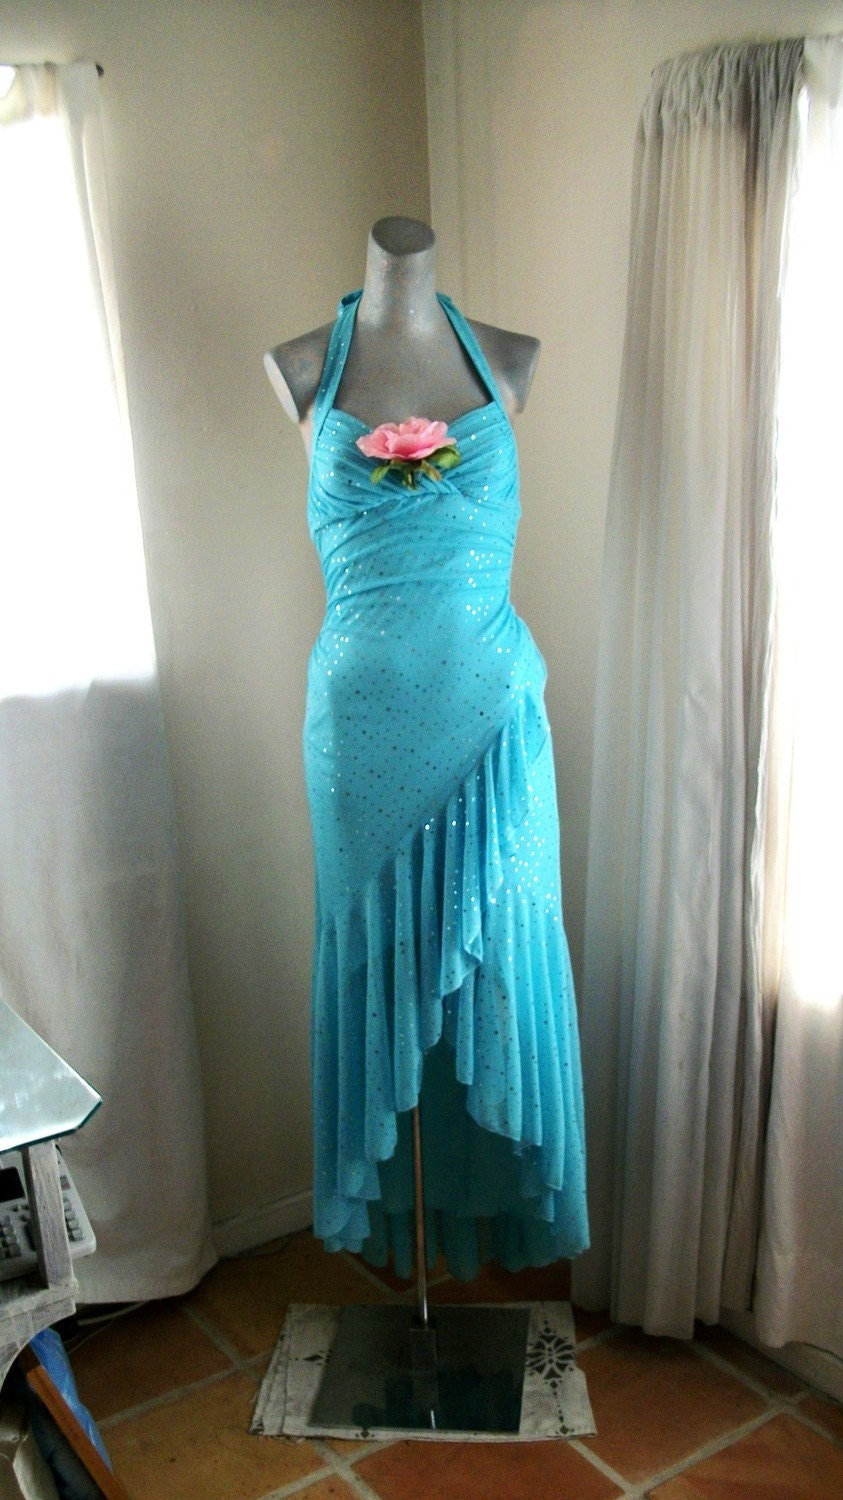 Flamingo Style Turquoise Blue Sparkly Sequin Dancing Dress with Pink Silk Rose and Ruffle Hem